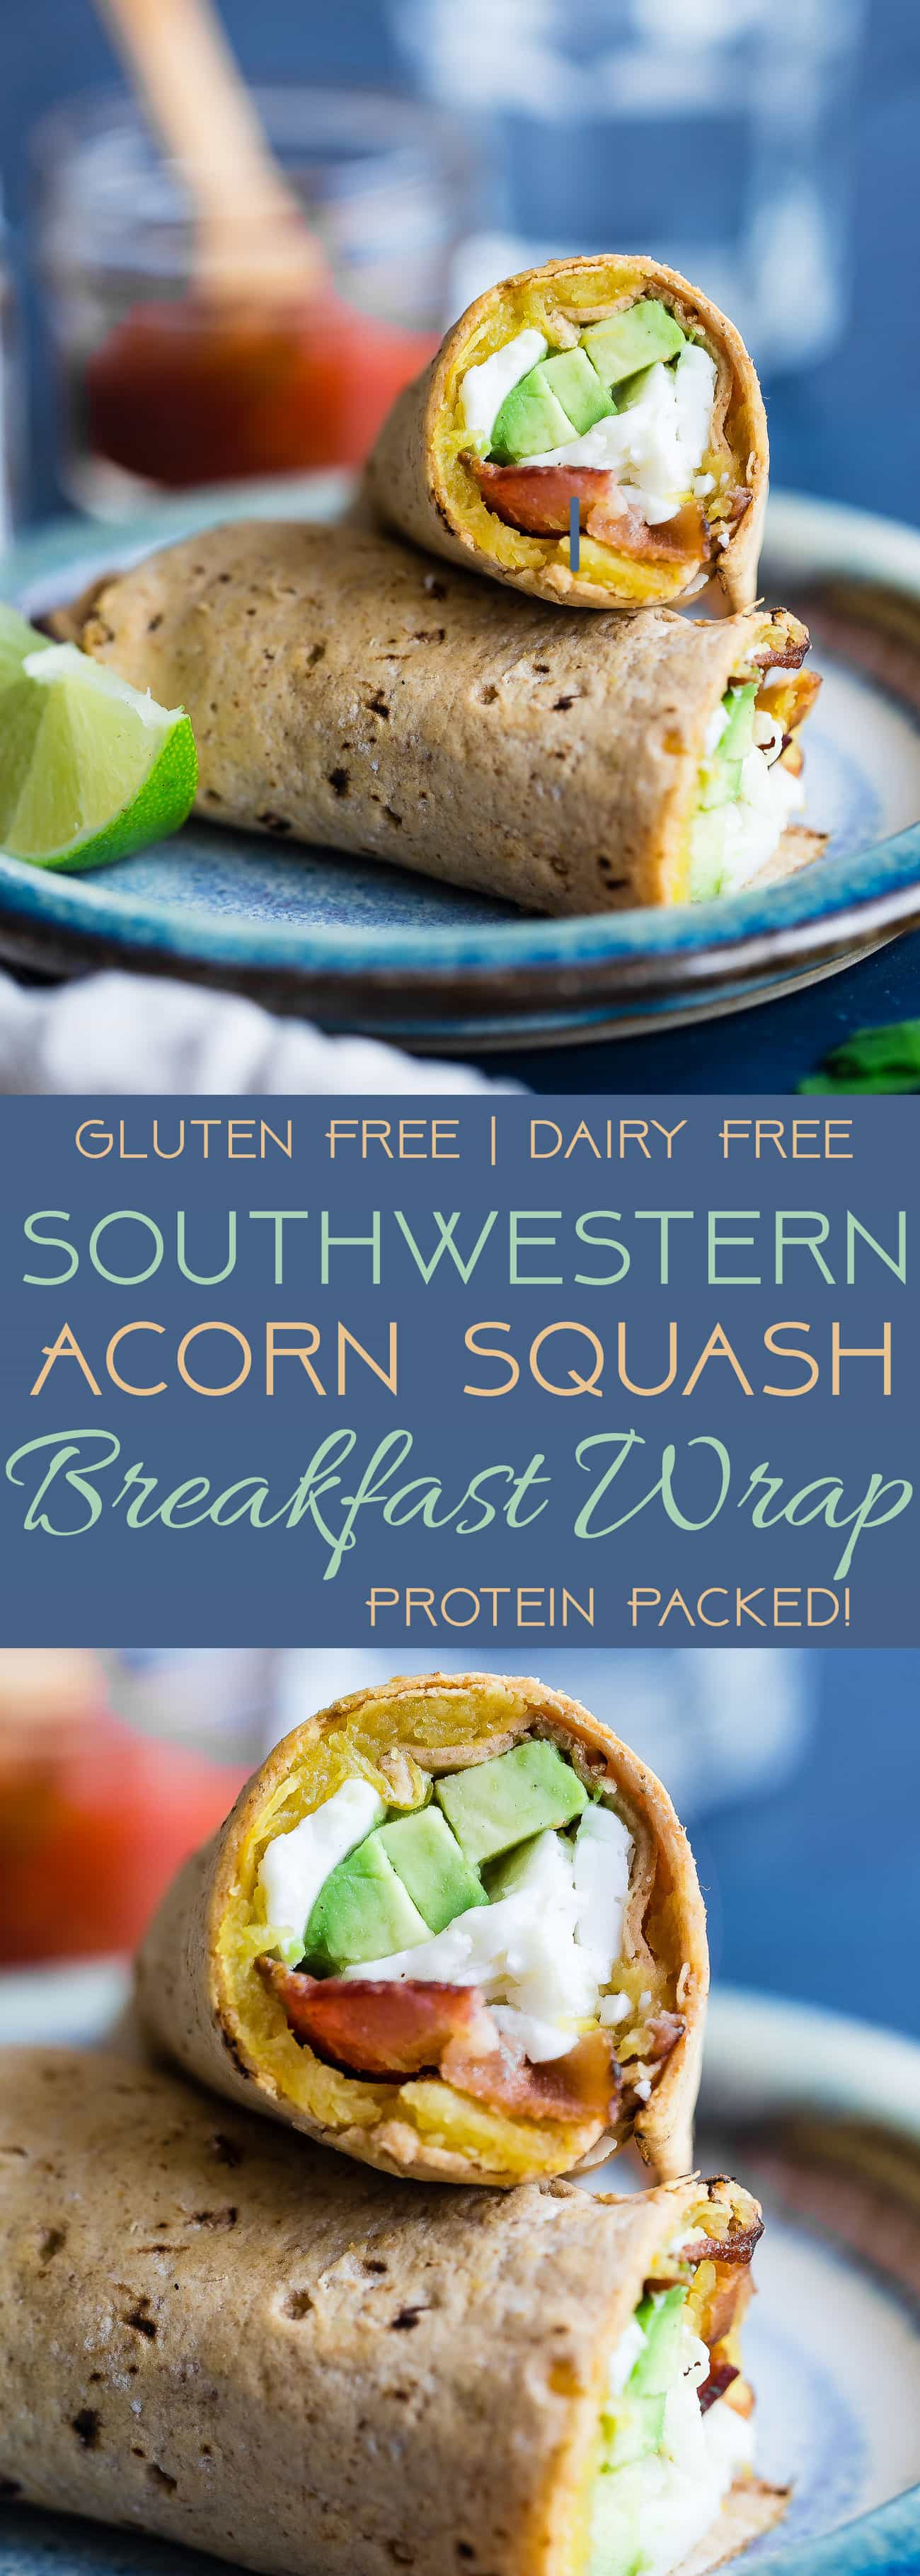 Southwestern Breakfast Burrito - A delicious, gluten free and protein packed breakfast for busy mornings that uses taco seasoned, roasted acorn squash to give it a sweet and spicy flavor! | Foodfaithfitness.com | @FoodFaithFit